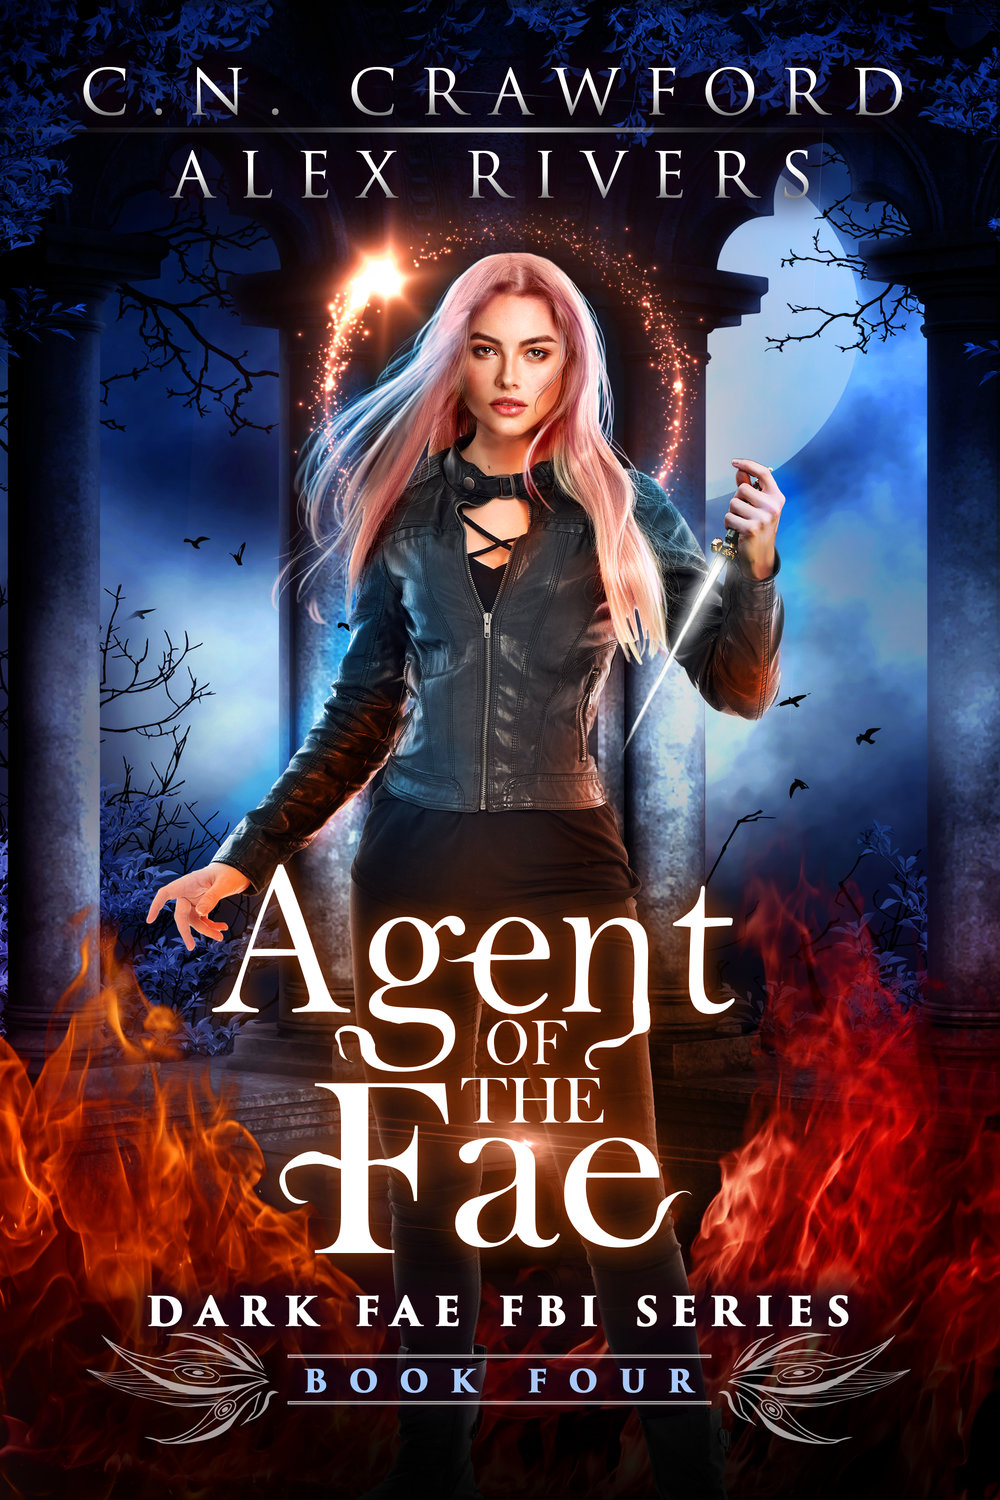 Book 4: Agent of the Fae